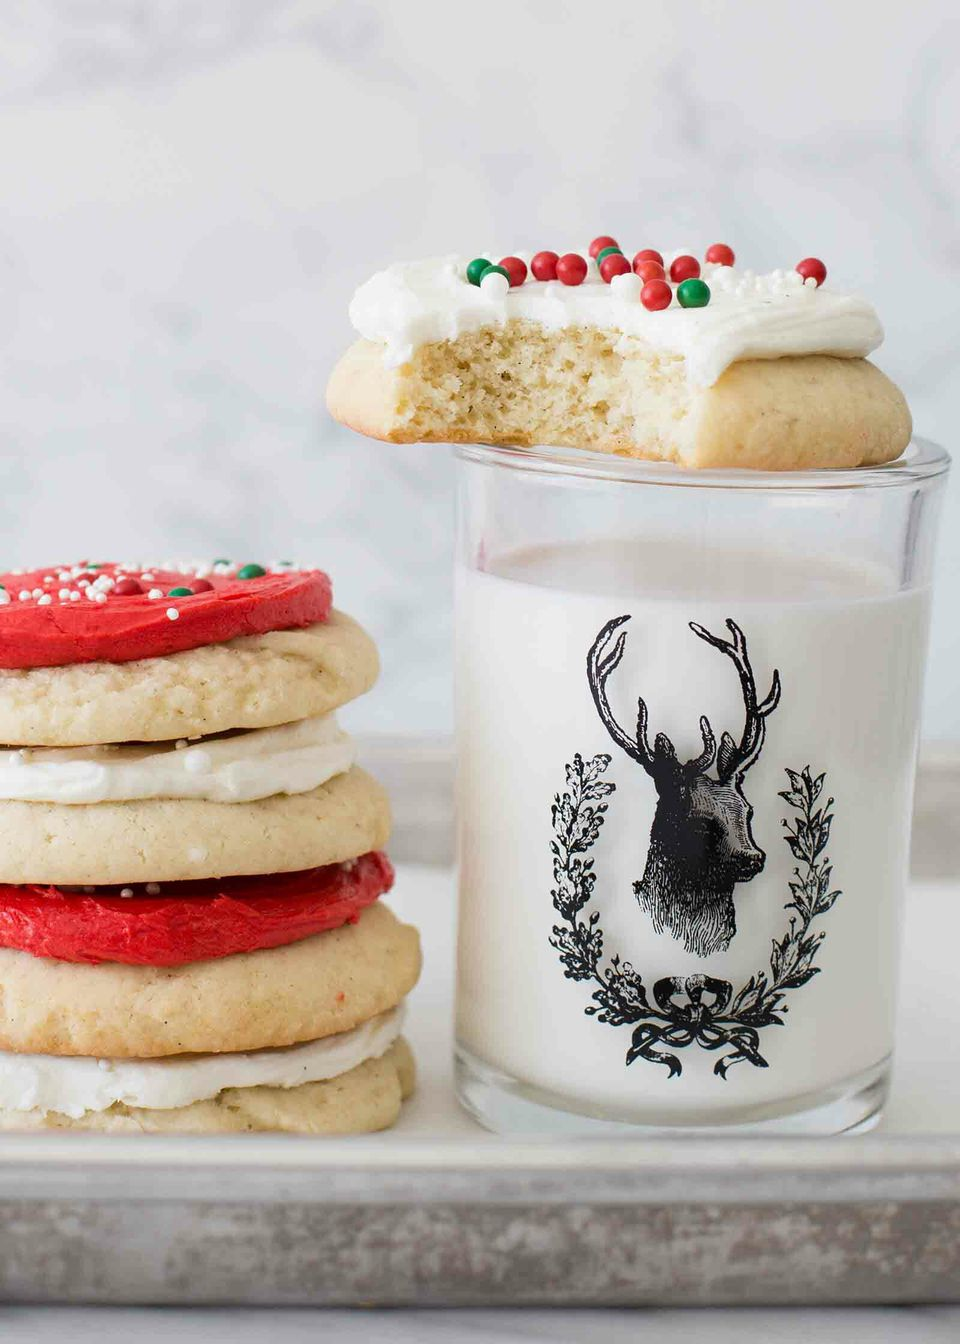 Homemade sugar cookies stacked and set next to a glass of milk.